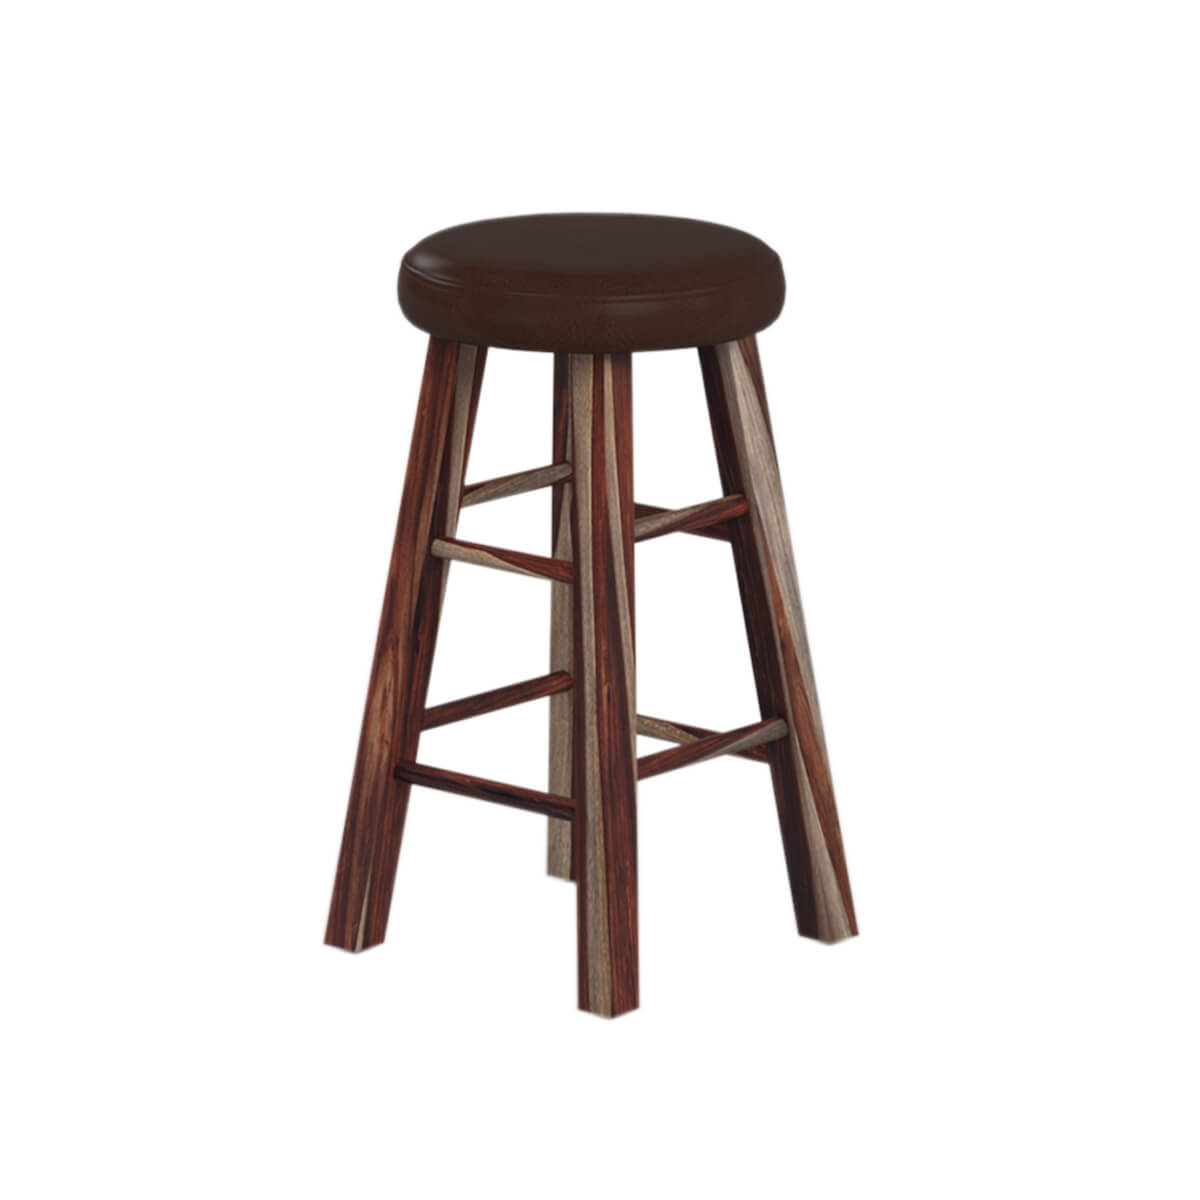 Minnesota Solid Wood & Leather Upholstered Rustic Round Bar Stool